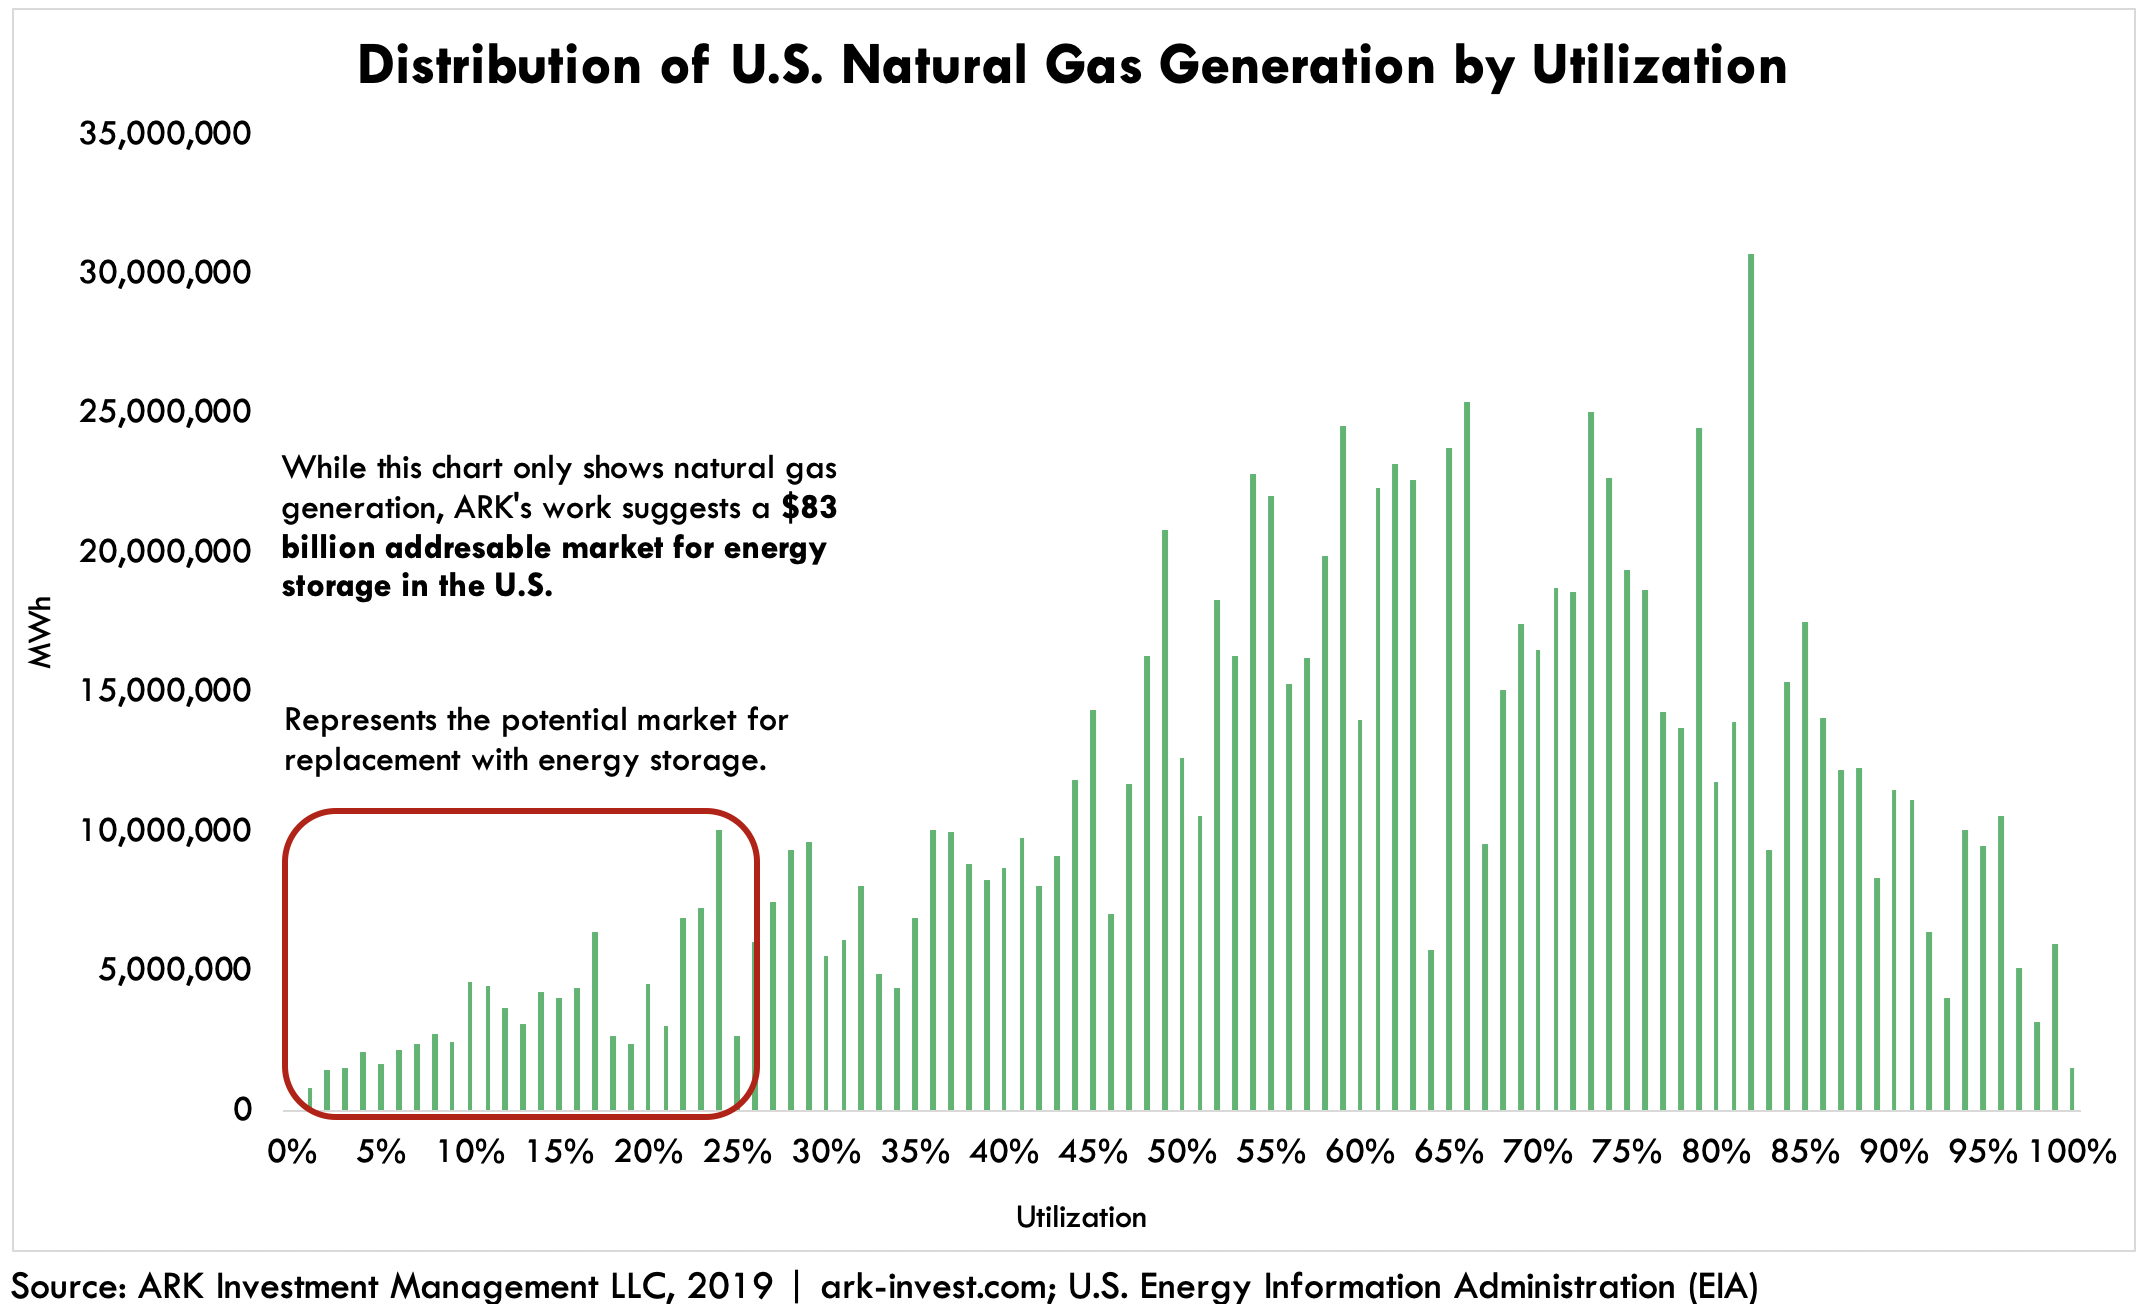 ARK Utility Energy Storage Distribution of US Natural Gas